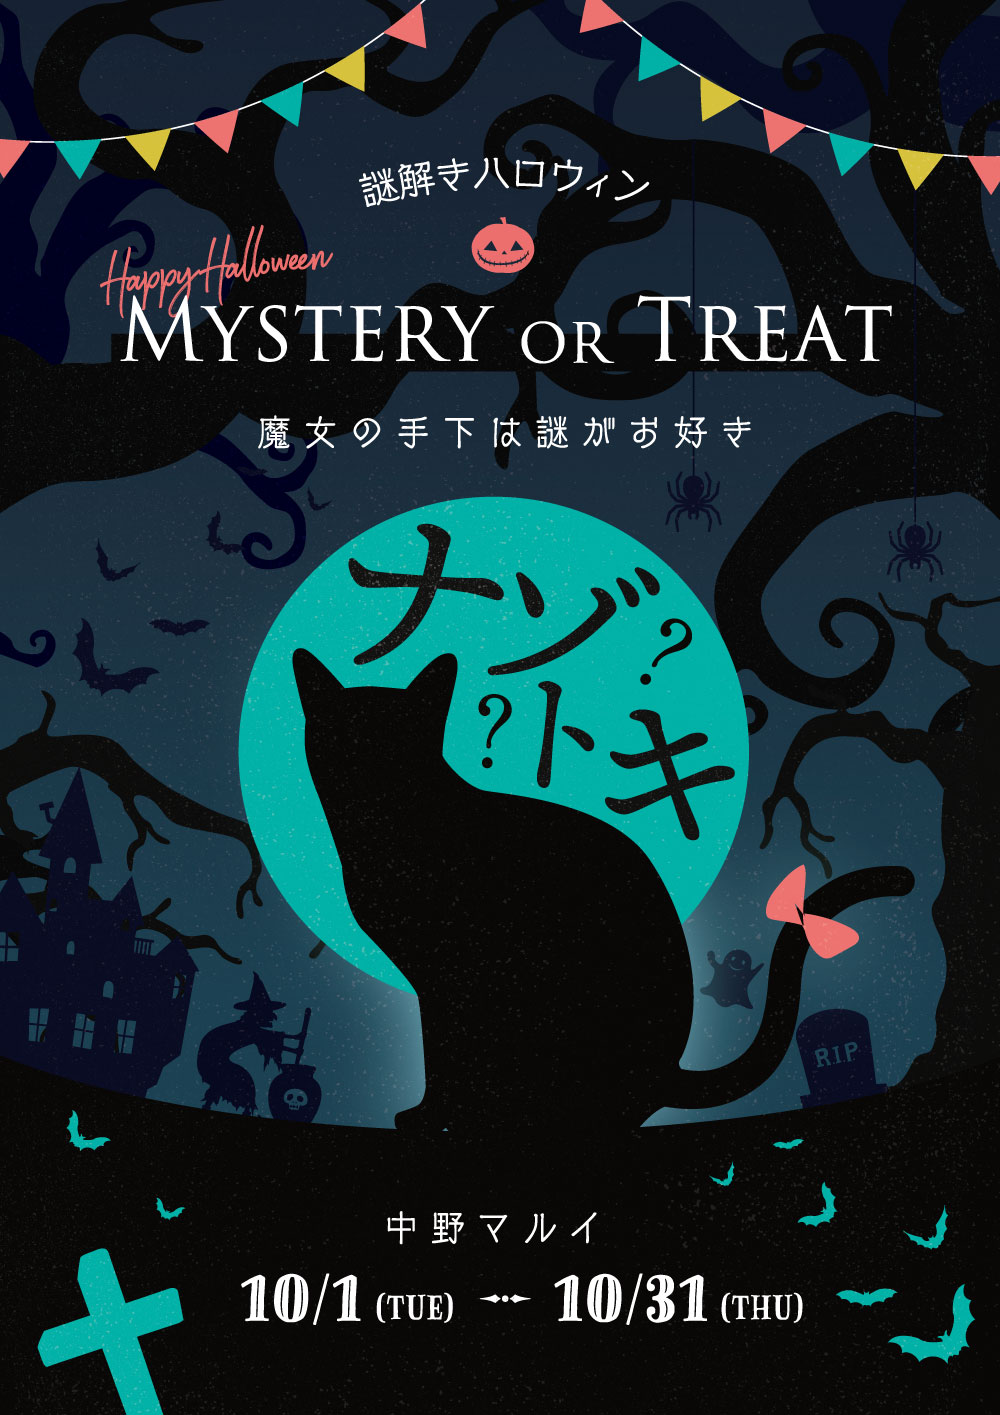 中野マルイ「Mystery or Treat!」